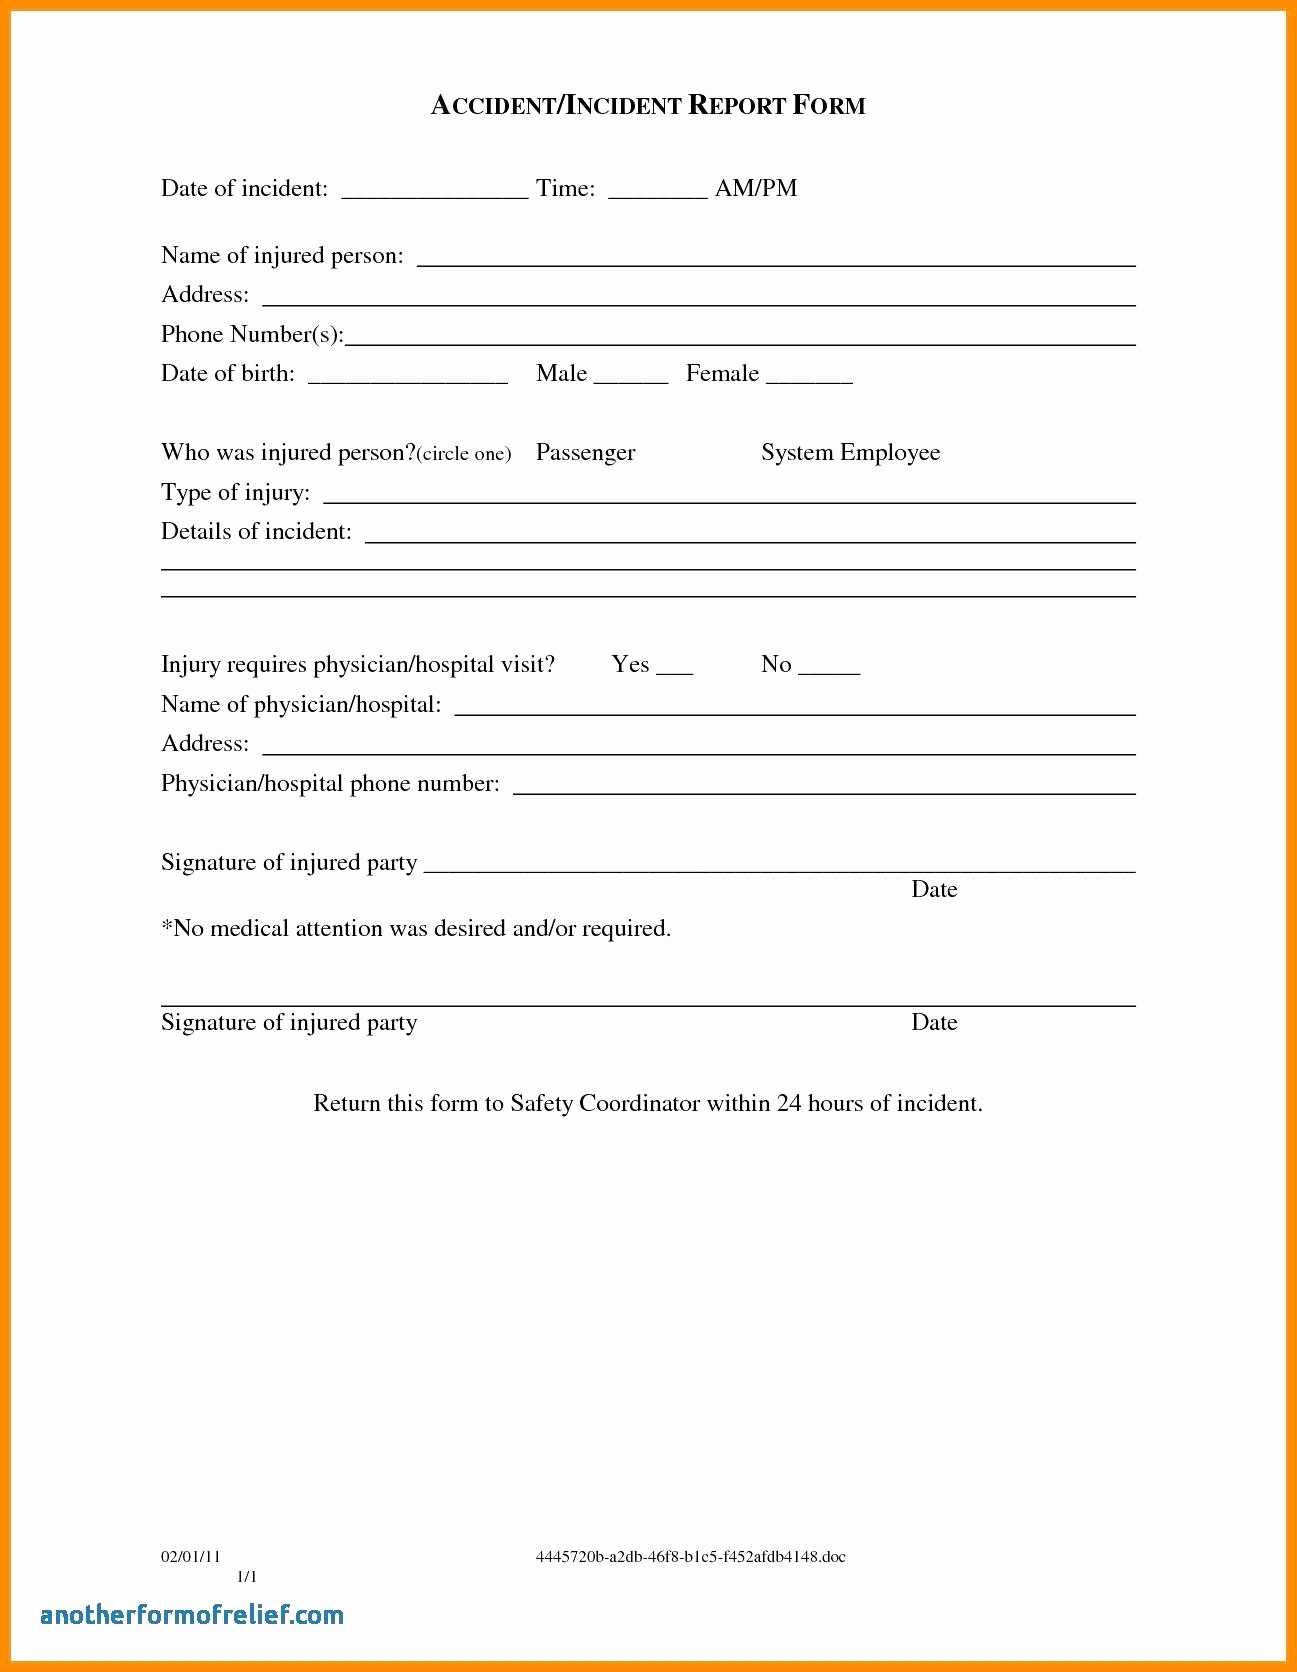 003 Template Ideas Incident Reportm Accidentms Hazard in Incident Hazard Report Form Template